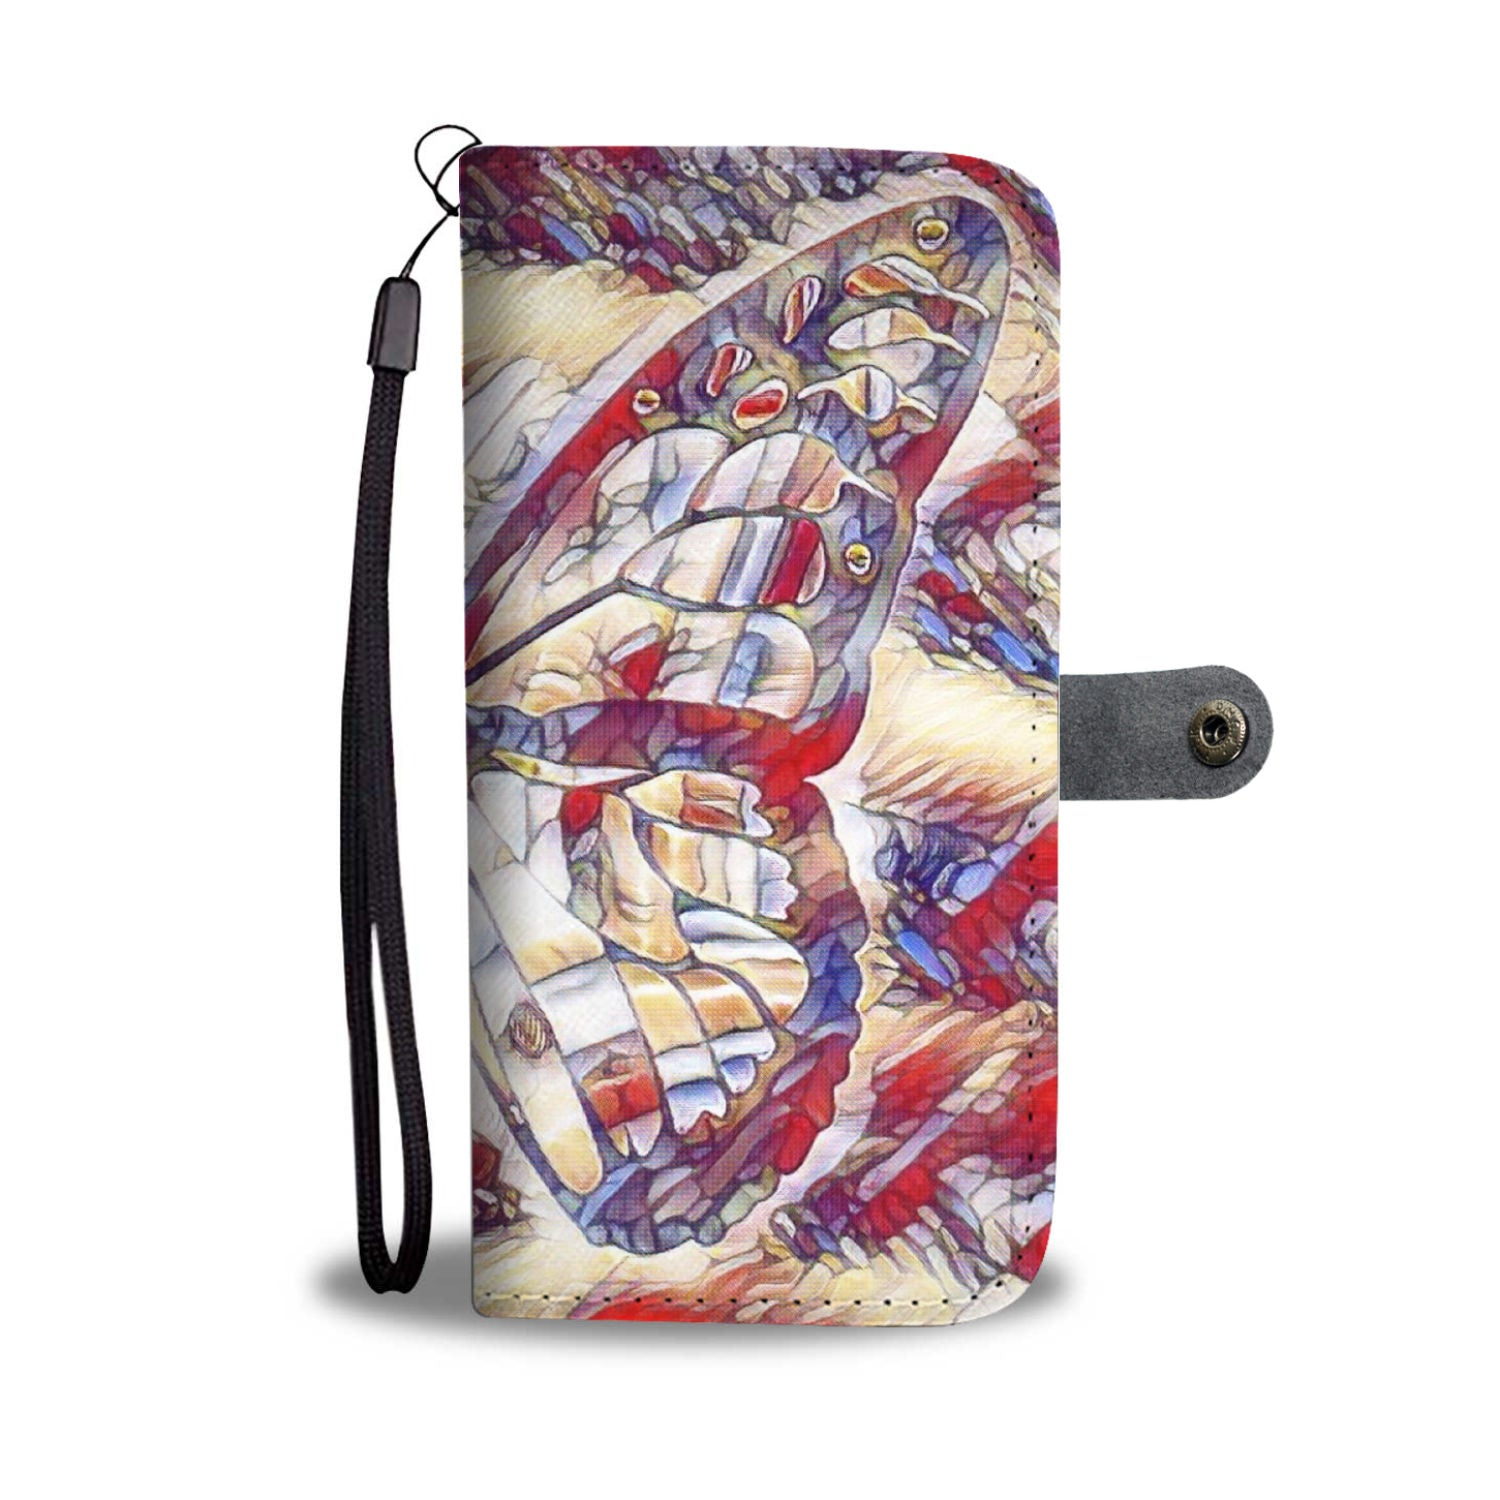 Butterfly phone wallet